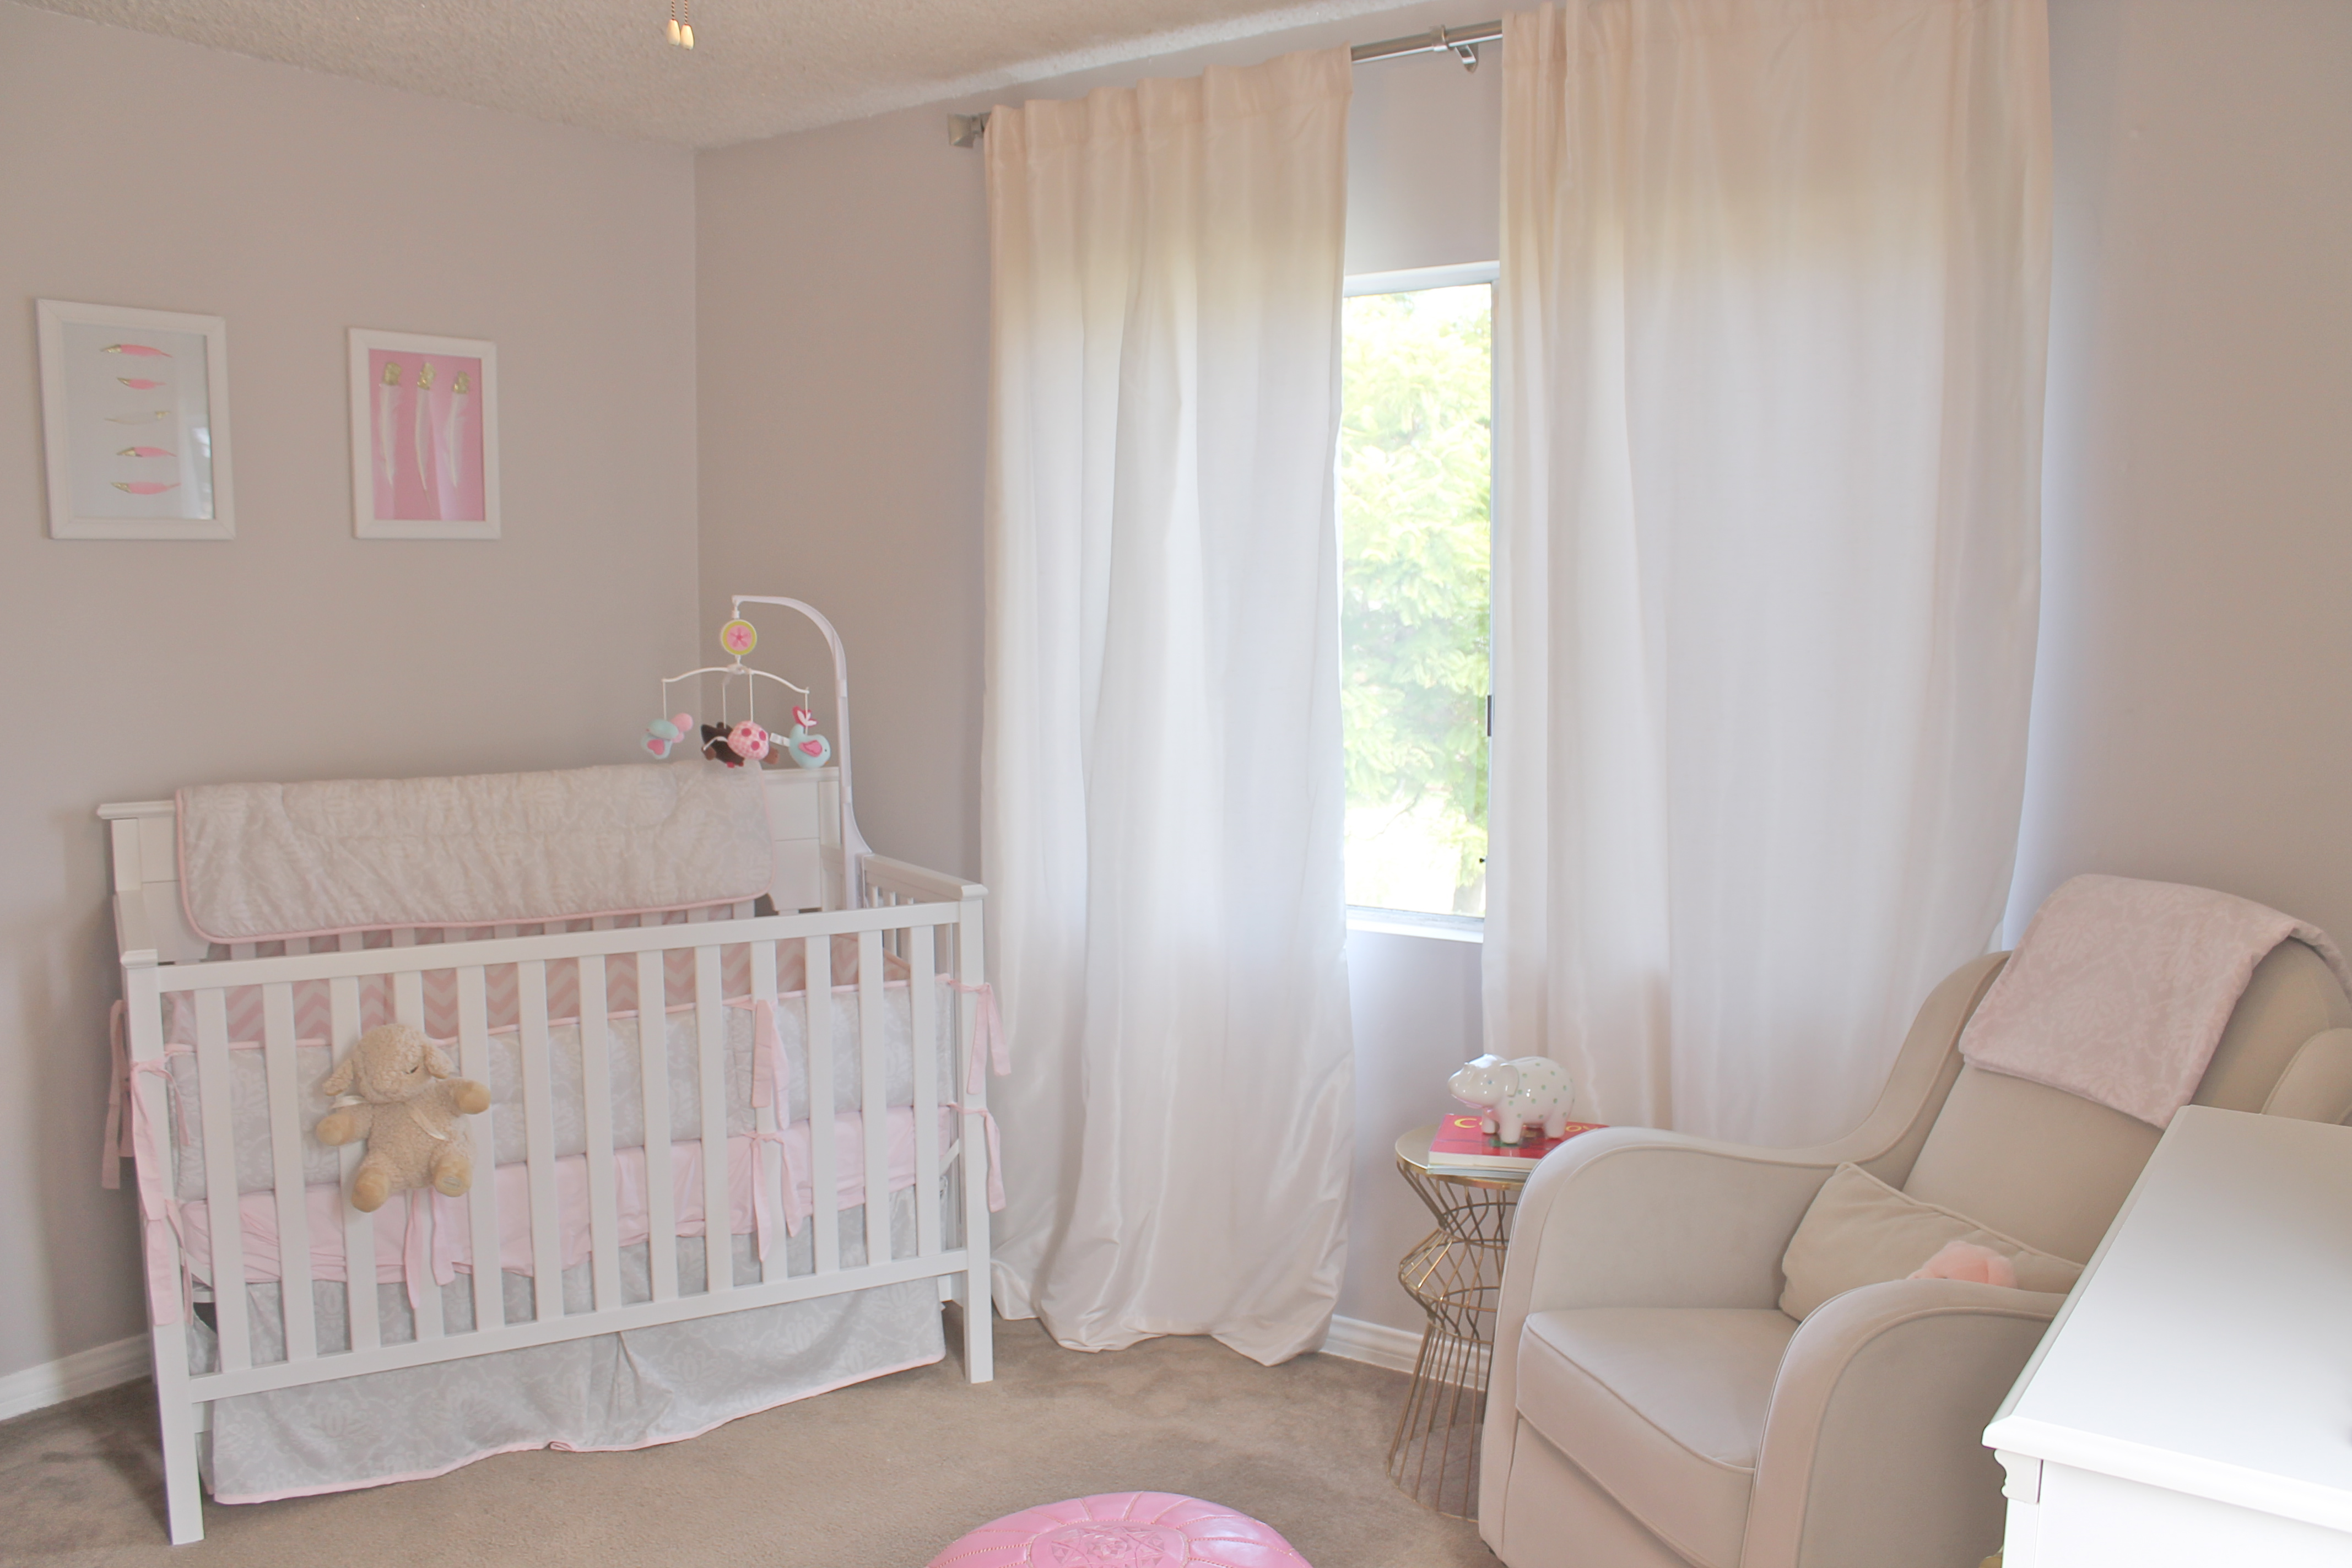 Keira S Nursery Chapter I The Room Homerandruth